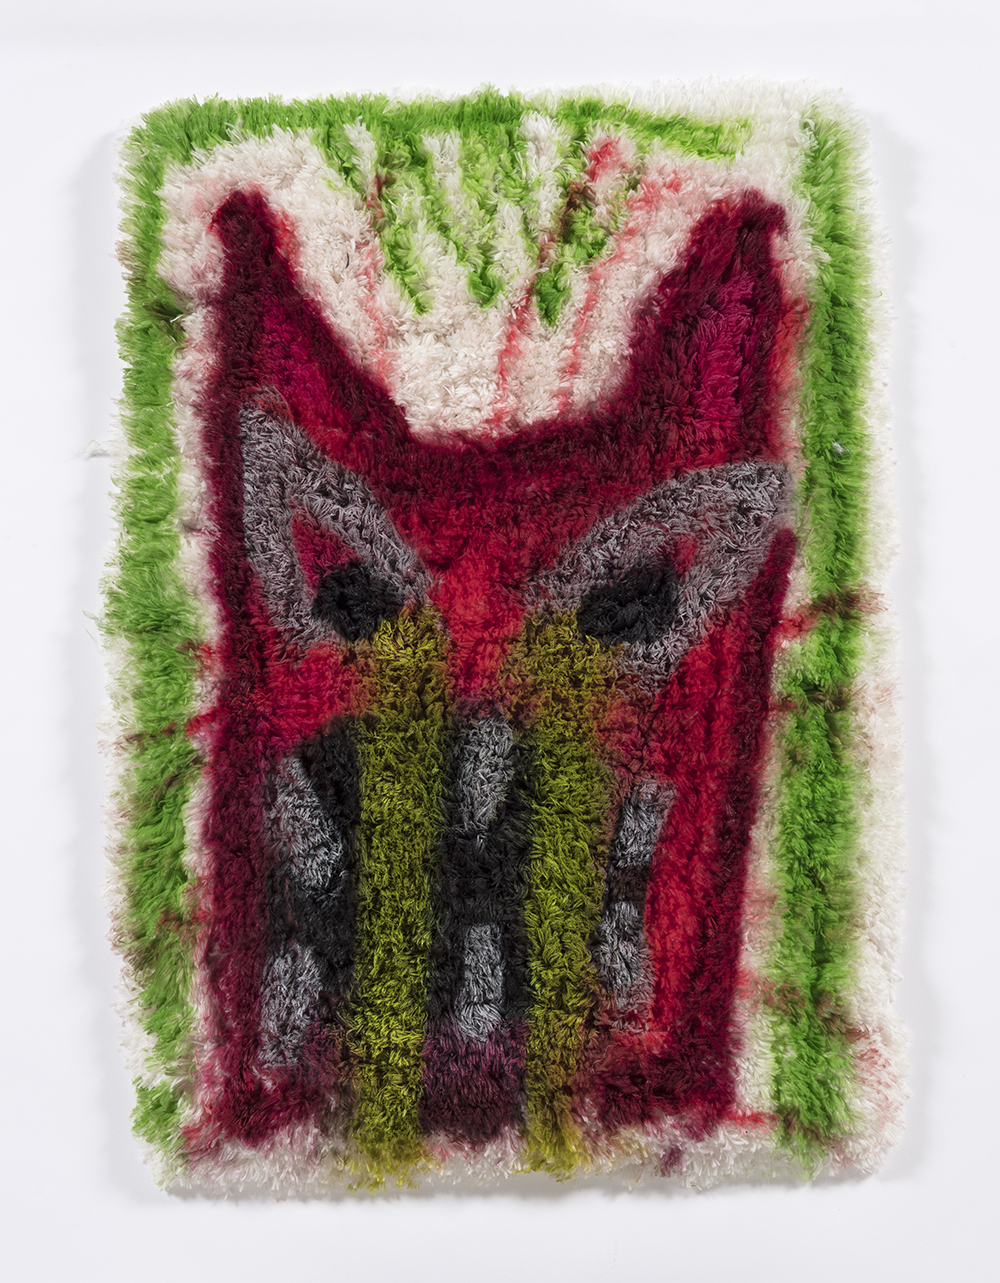 Hannah Epstein. <em>Rage Rug</em>, 2019. Spray paint on found rug, 37 1/2 x 25 inches  (95.3 x 63.5 cm)